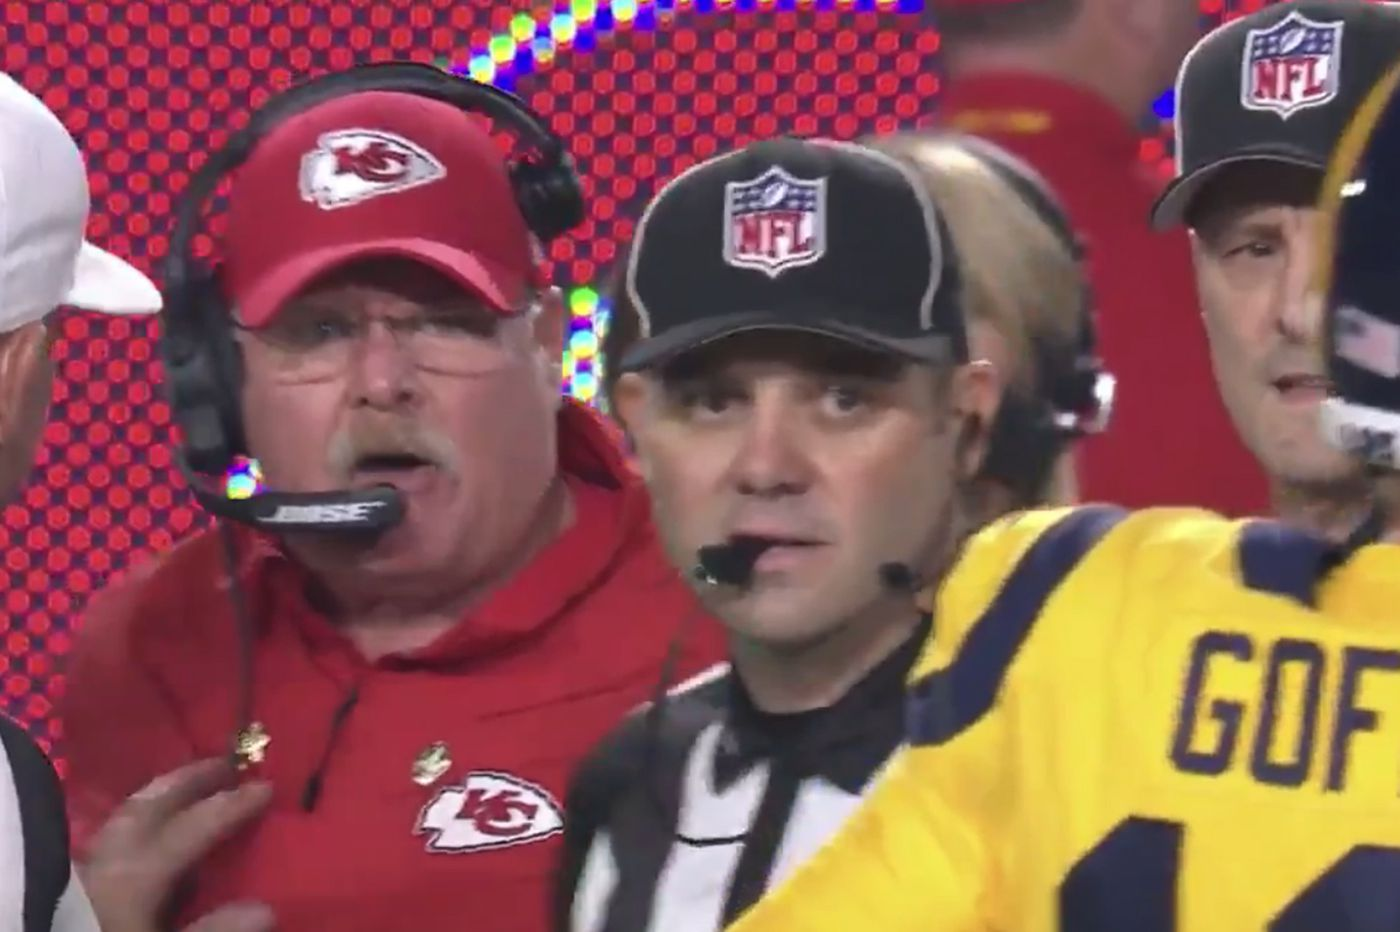 Andy Reid gets angry at NFL's 'all-star' refs, yells at Jared Goff instead during Rams-Chiefs